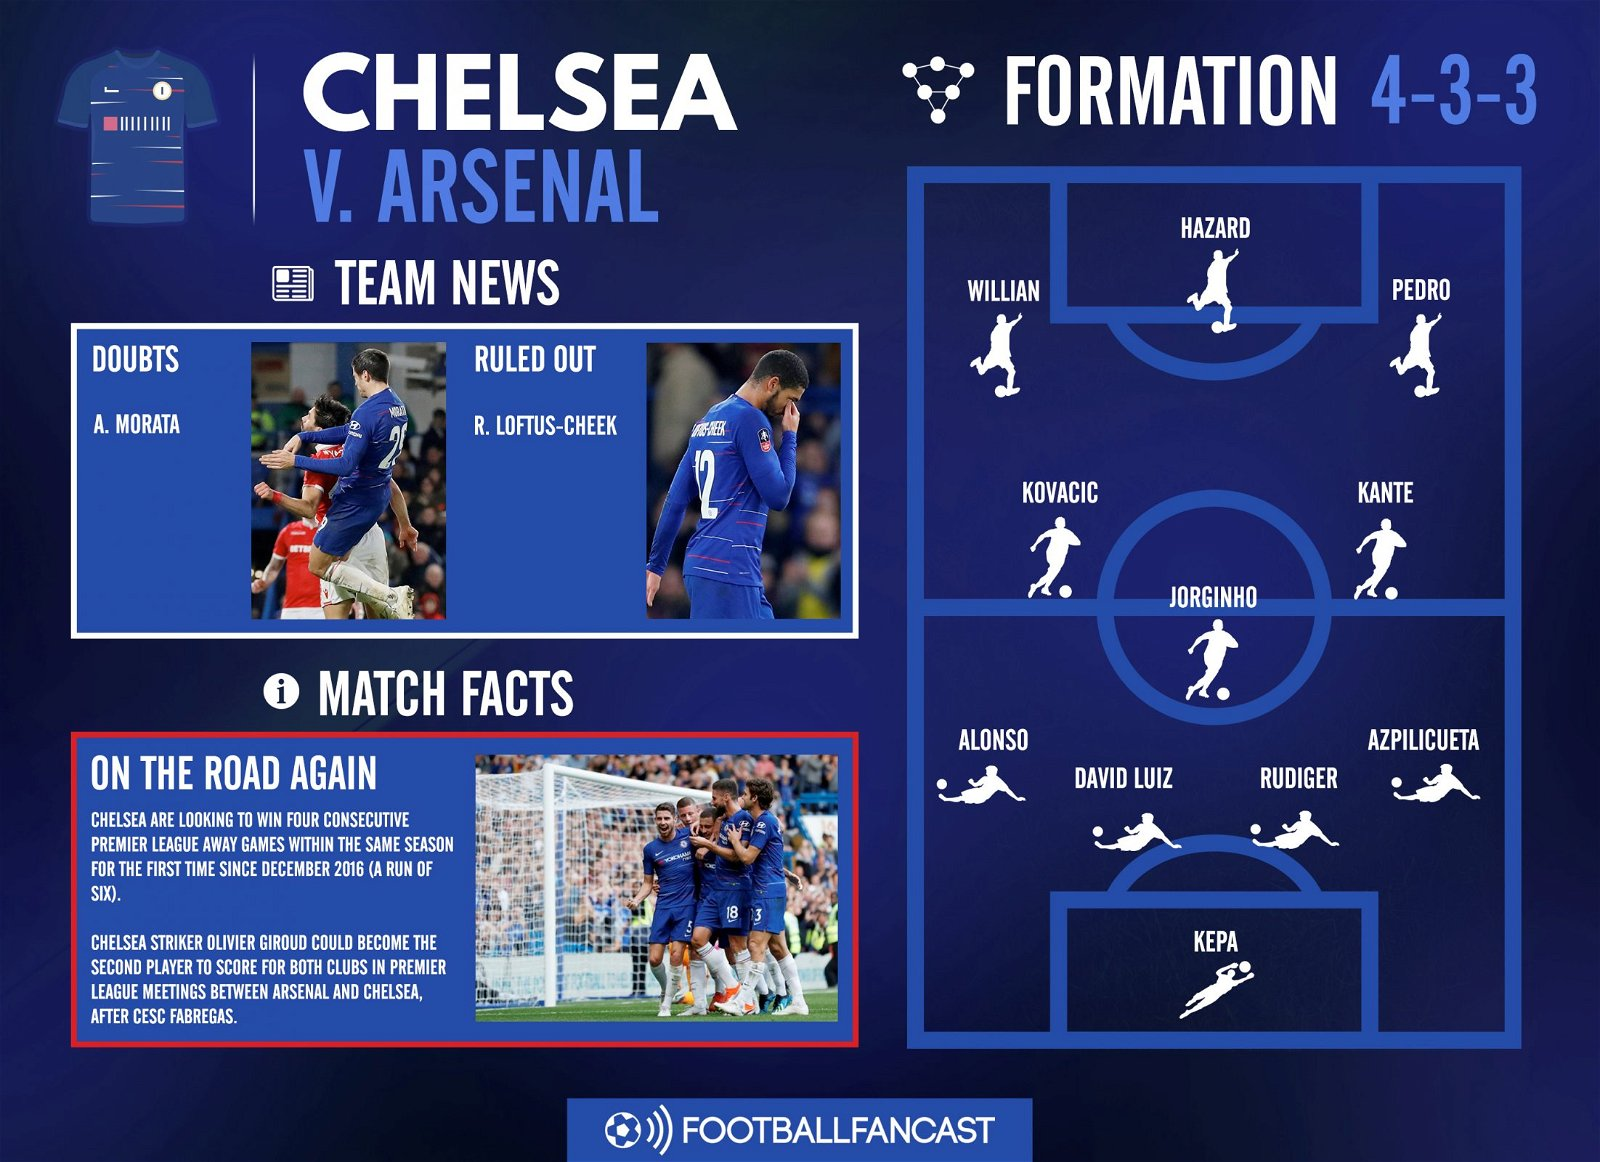 Chelsea vs Arsenal Chelsea Team News graphic - Match Preview: Arsenal vs Chelsea